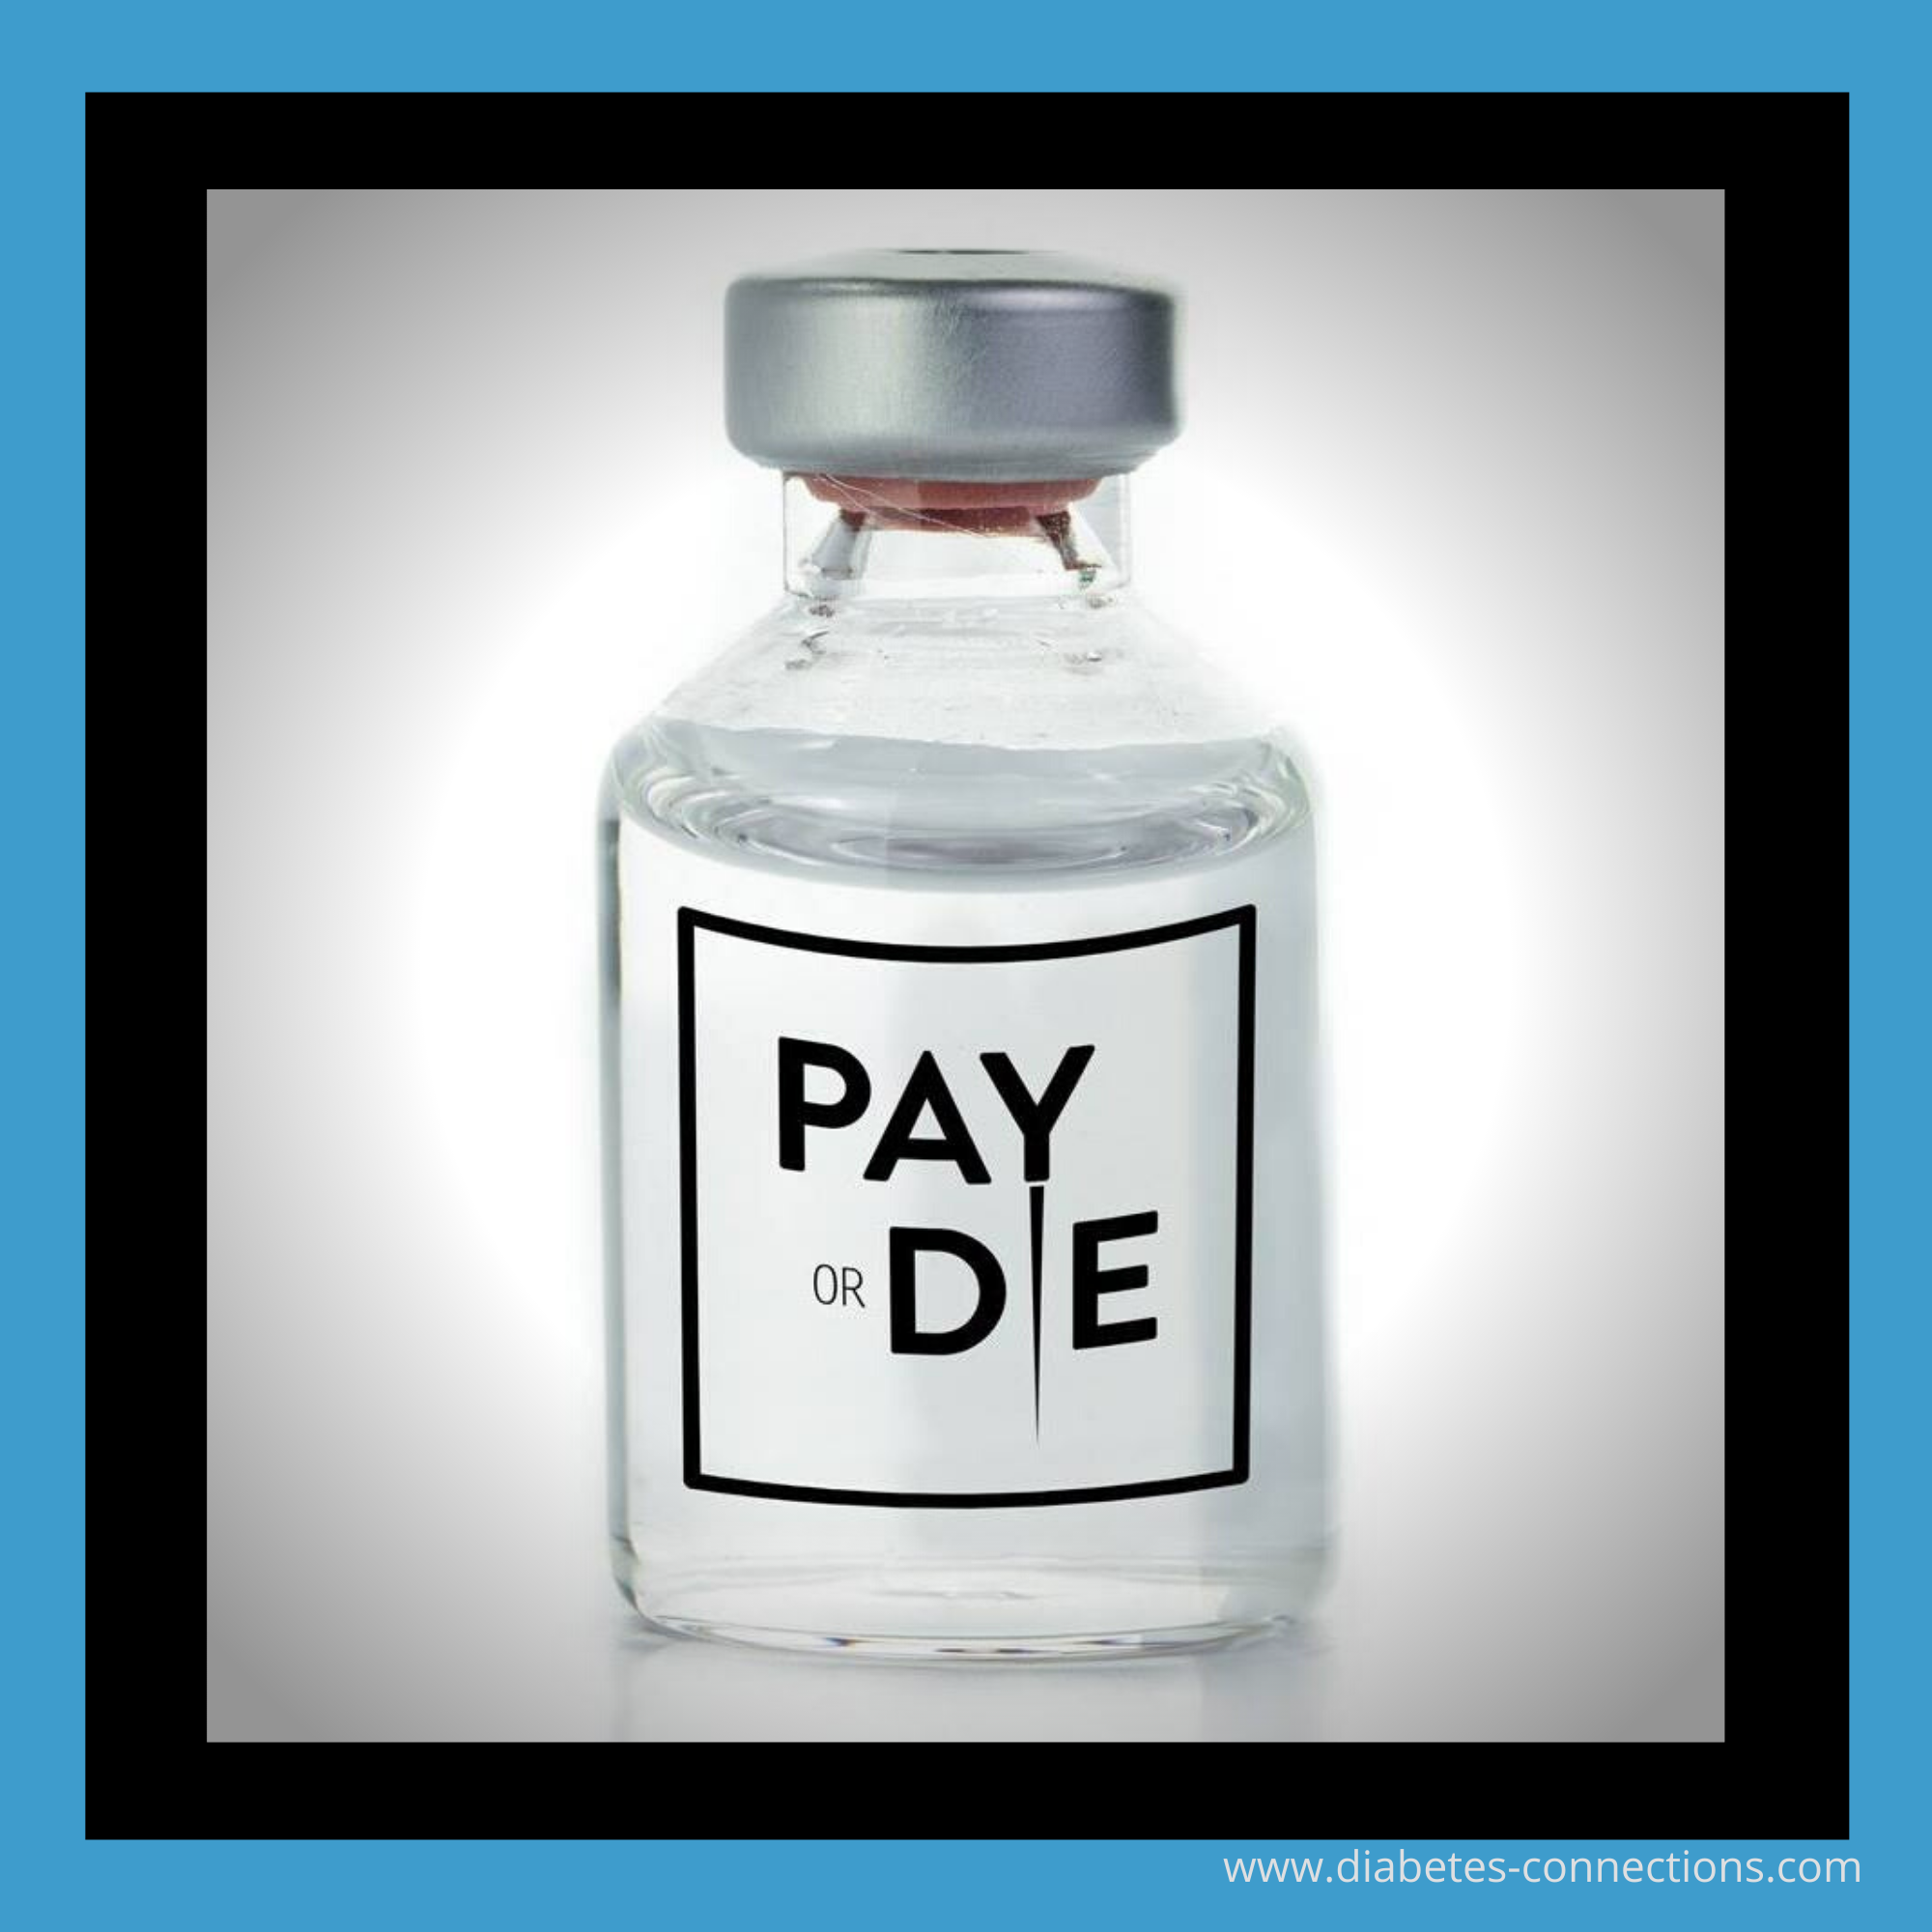 insulin vial with the words pay or die on the front